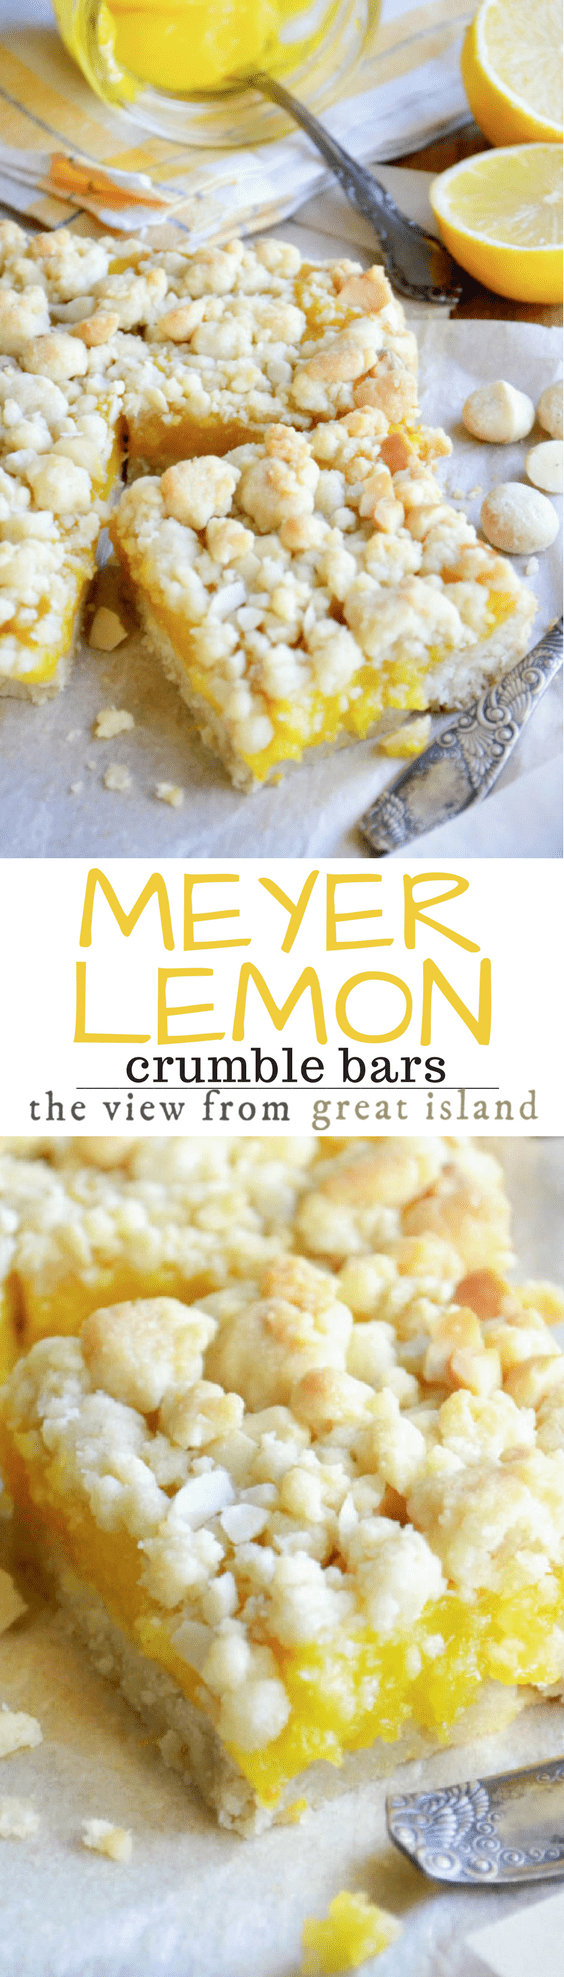 Meyer Lemon Macadamia Crumble Squares is a buttery shortbread recipe bursting with the unique floral citrus flavor of Meyer lemons and the crunch of macadamia nuts. #meyerlemon #lemonbars #macadamianuts #bestlemonbars #shortbread #crumblebars #dessert #lemoncurd #shortbreadcrumble #lemondessert